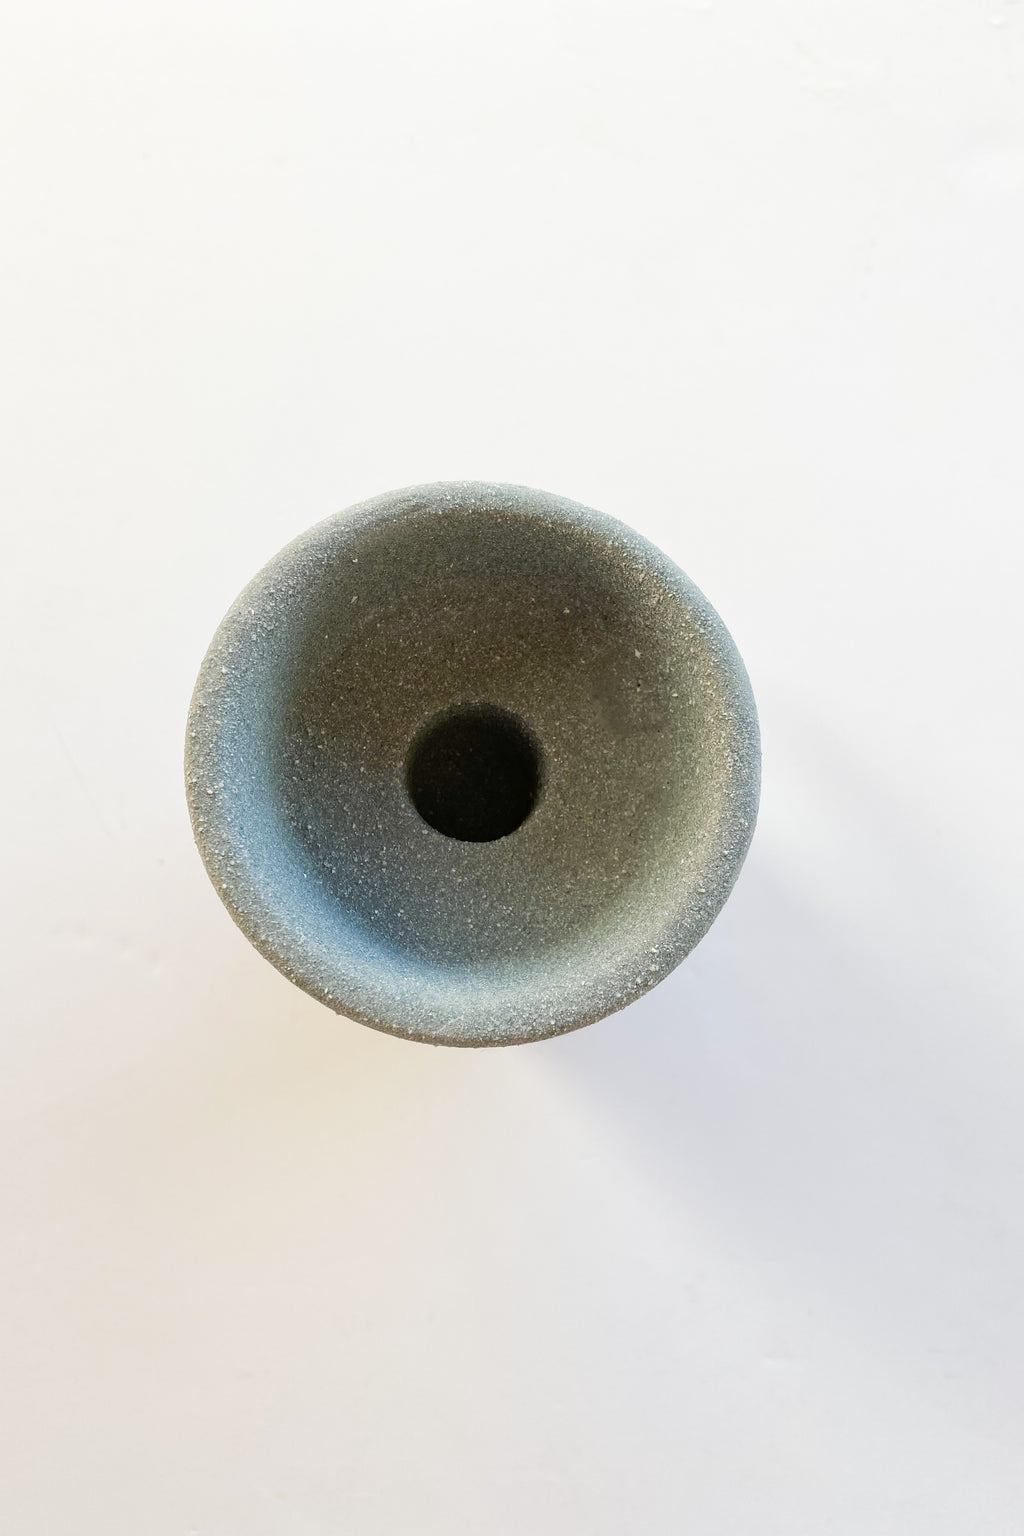 stoneware tealight/taper holder, matte grey